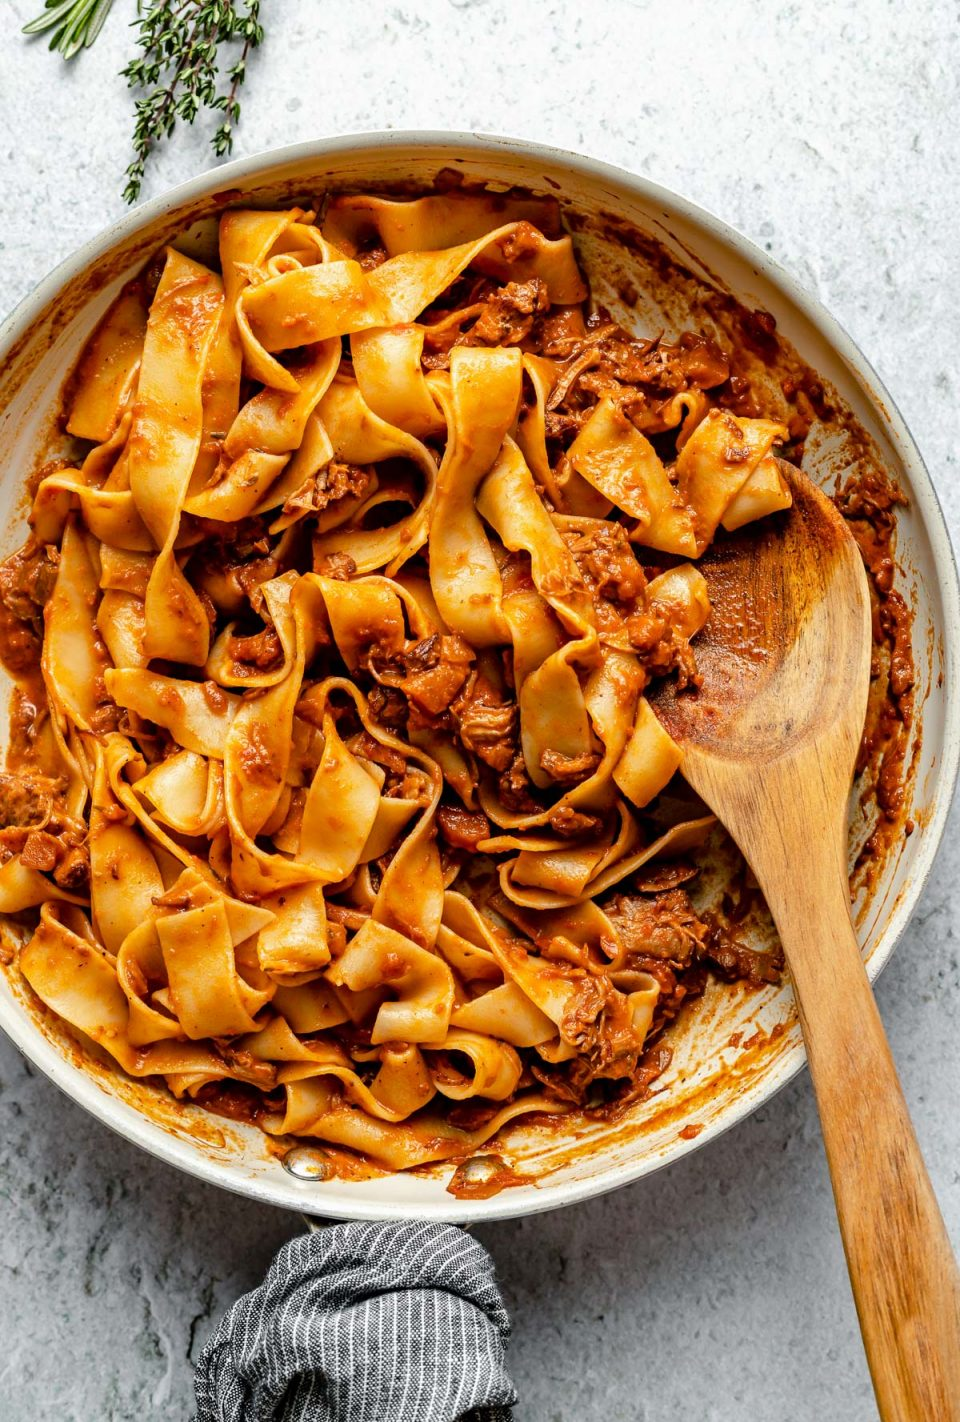 Lamb ragu pappardelle in a small skillet atop a light blue surface. A wooden spoon is nestled into the pasta. Next to the skillet are some fresh herbs.